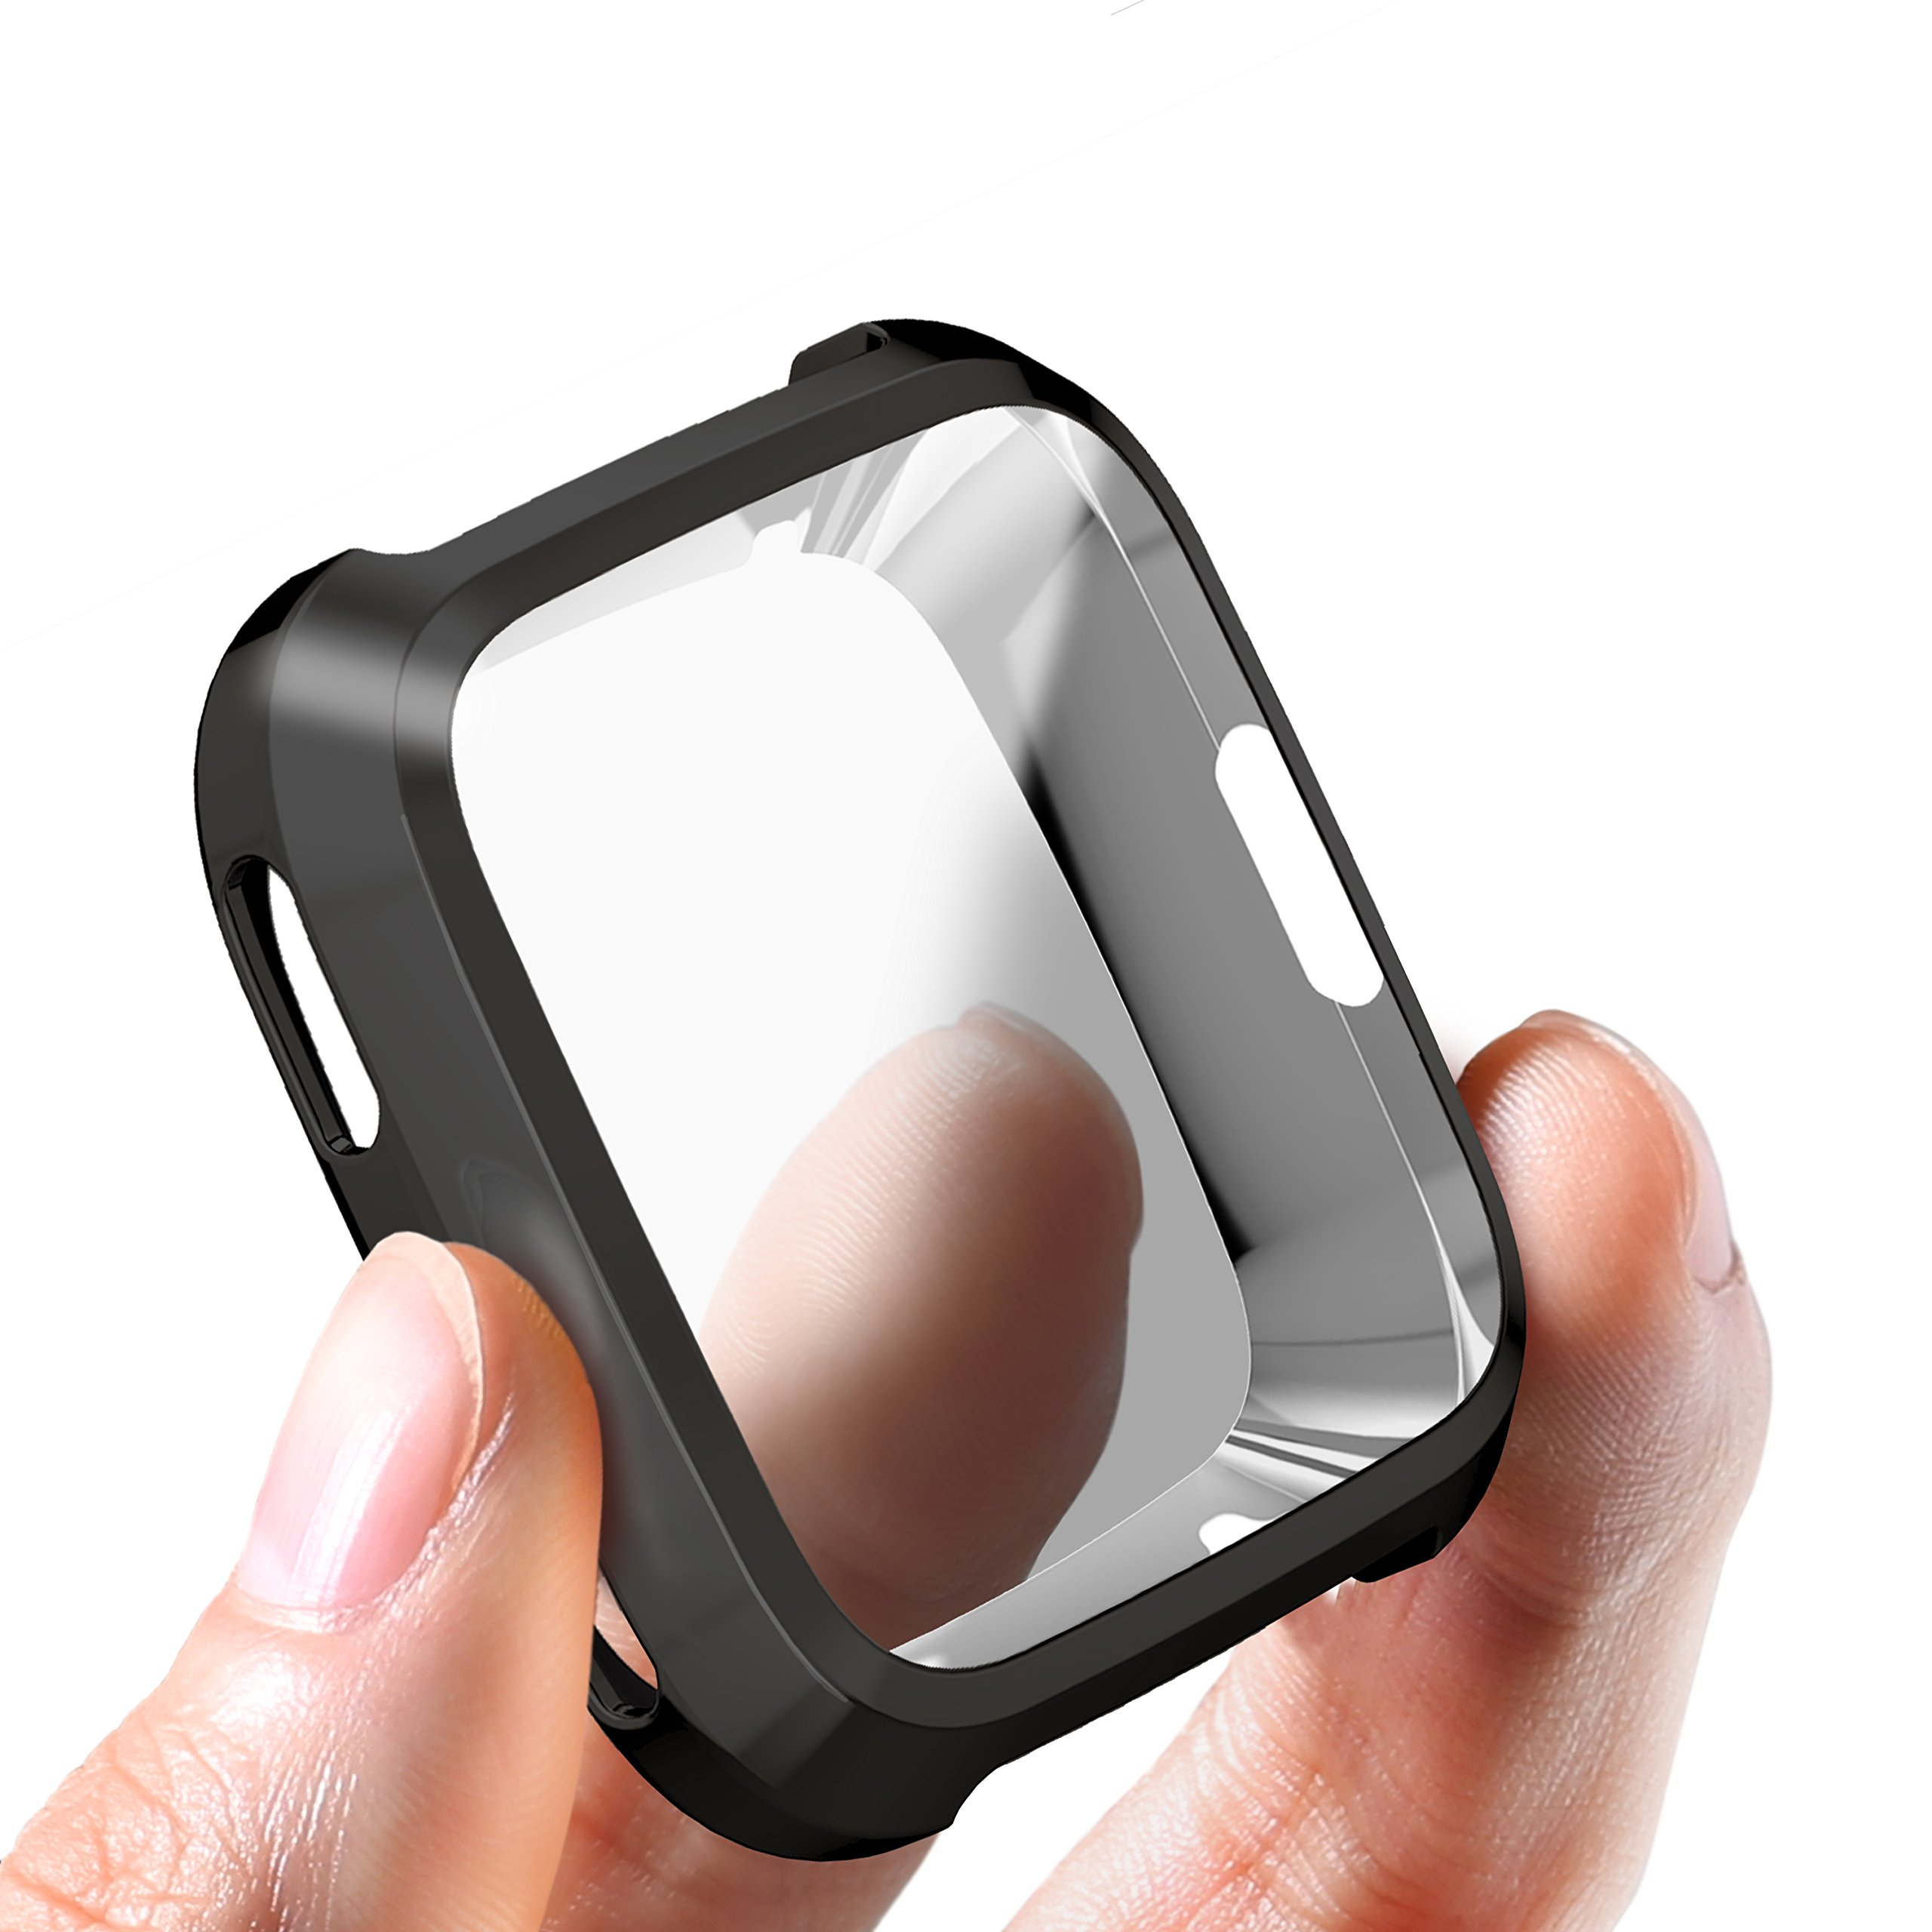 SIRUIBO Fitbit Versa Case, TPU Plated Screen Protector Rugged Cover [Scratch-Proof] All-Around Protective Bumper Shell Fitbit Versa Smartwatch, Black